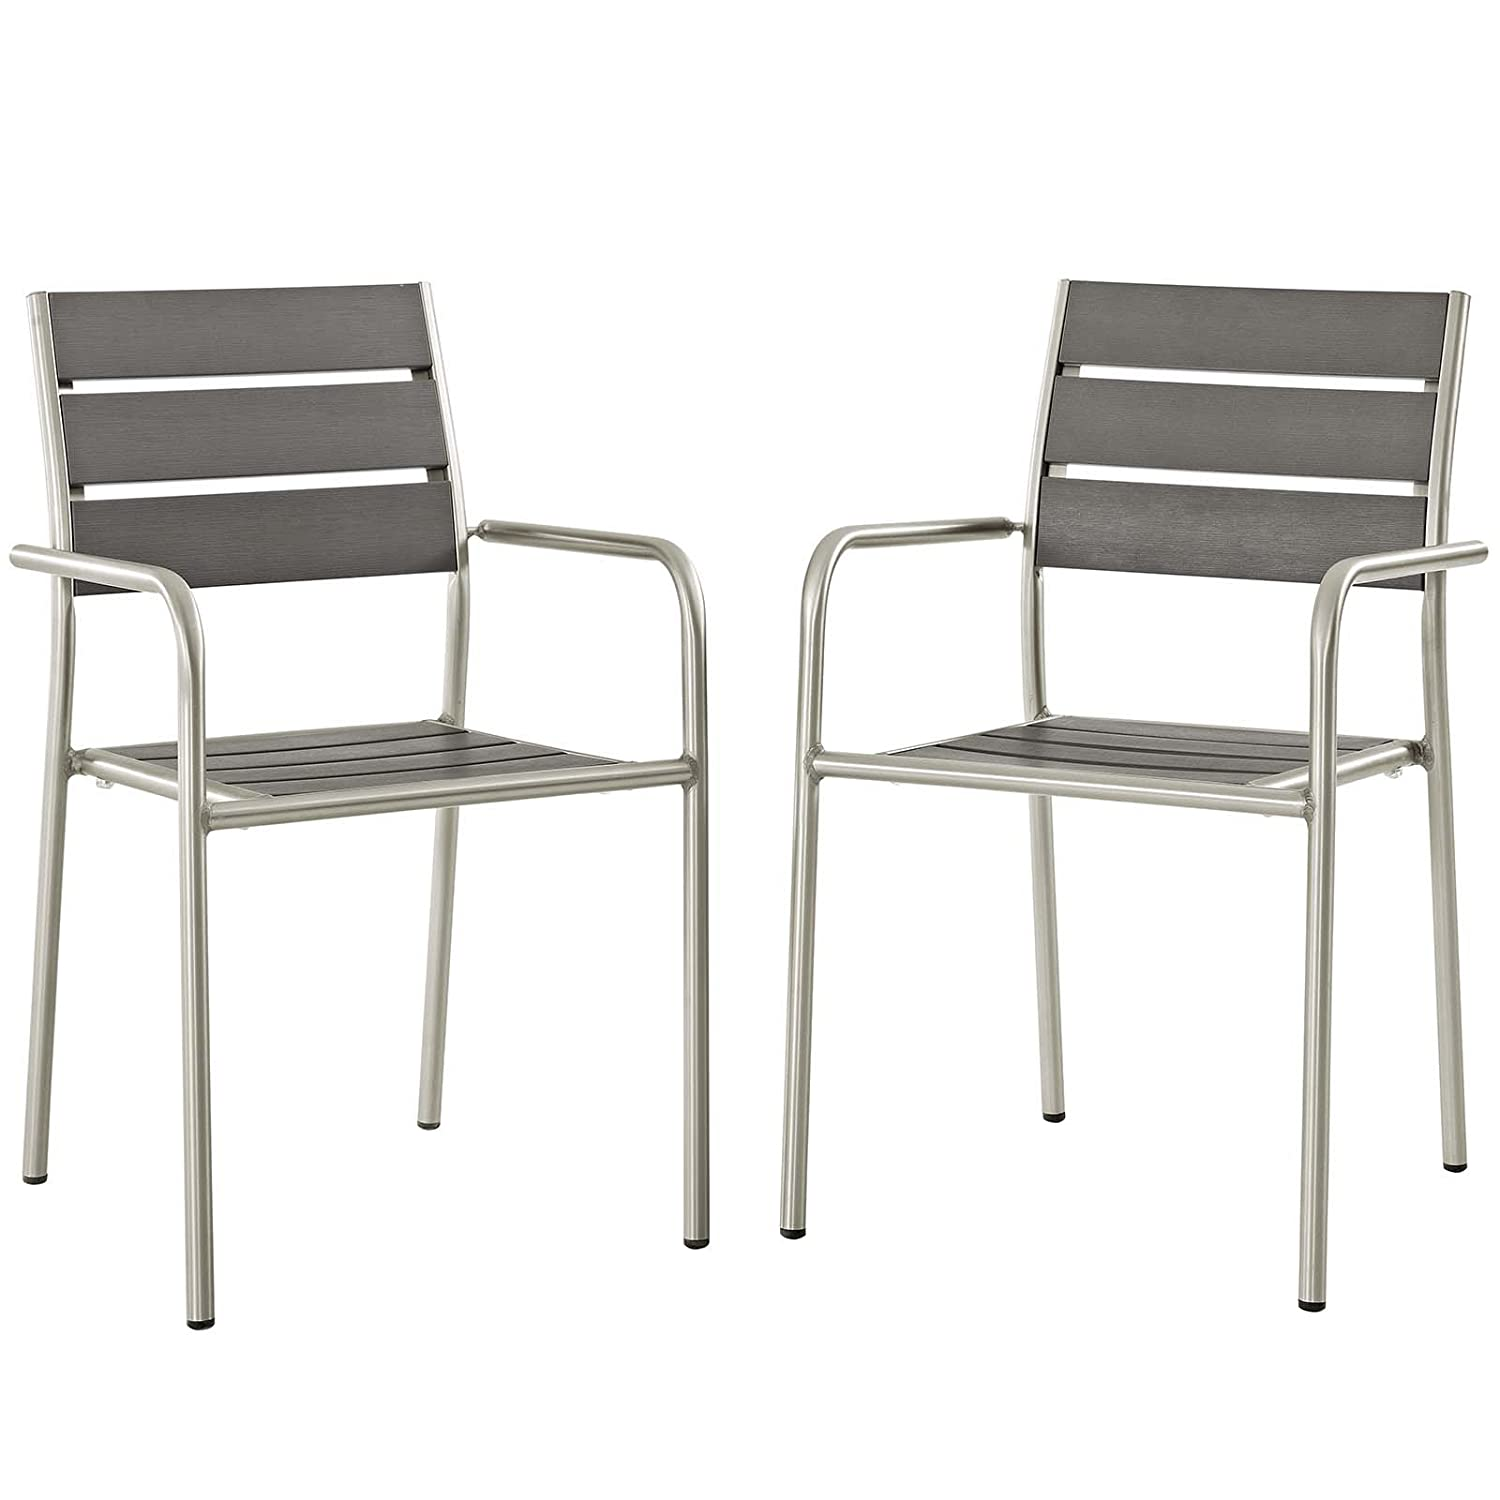 Modway EEI-3203-SLV-GRY-SET Shore Outdoor Patio Aluminum Dining Chair Set of 2 , Two Armchairs, Silver Gray